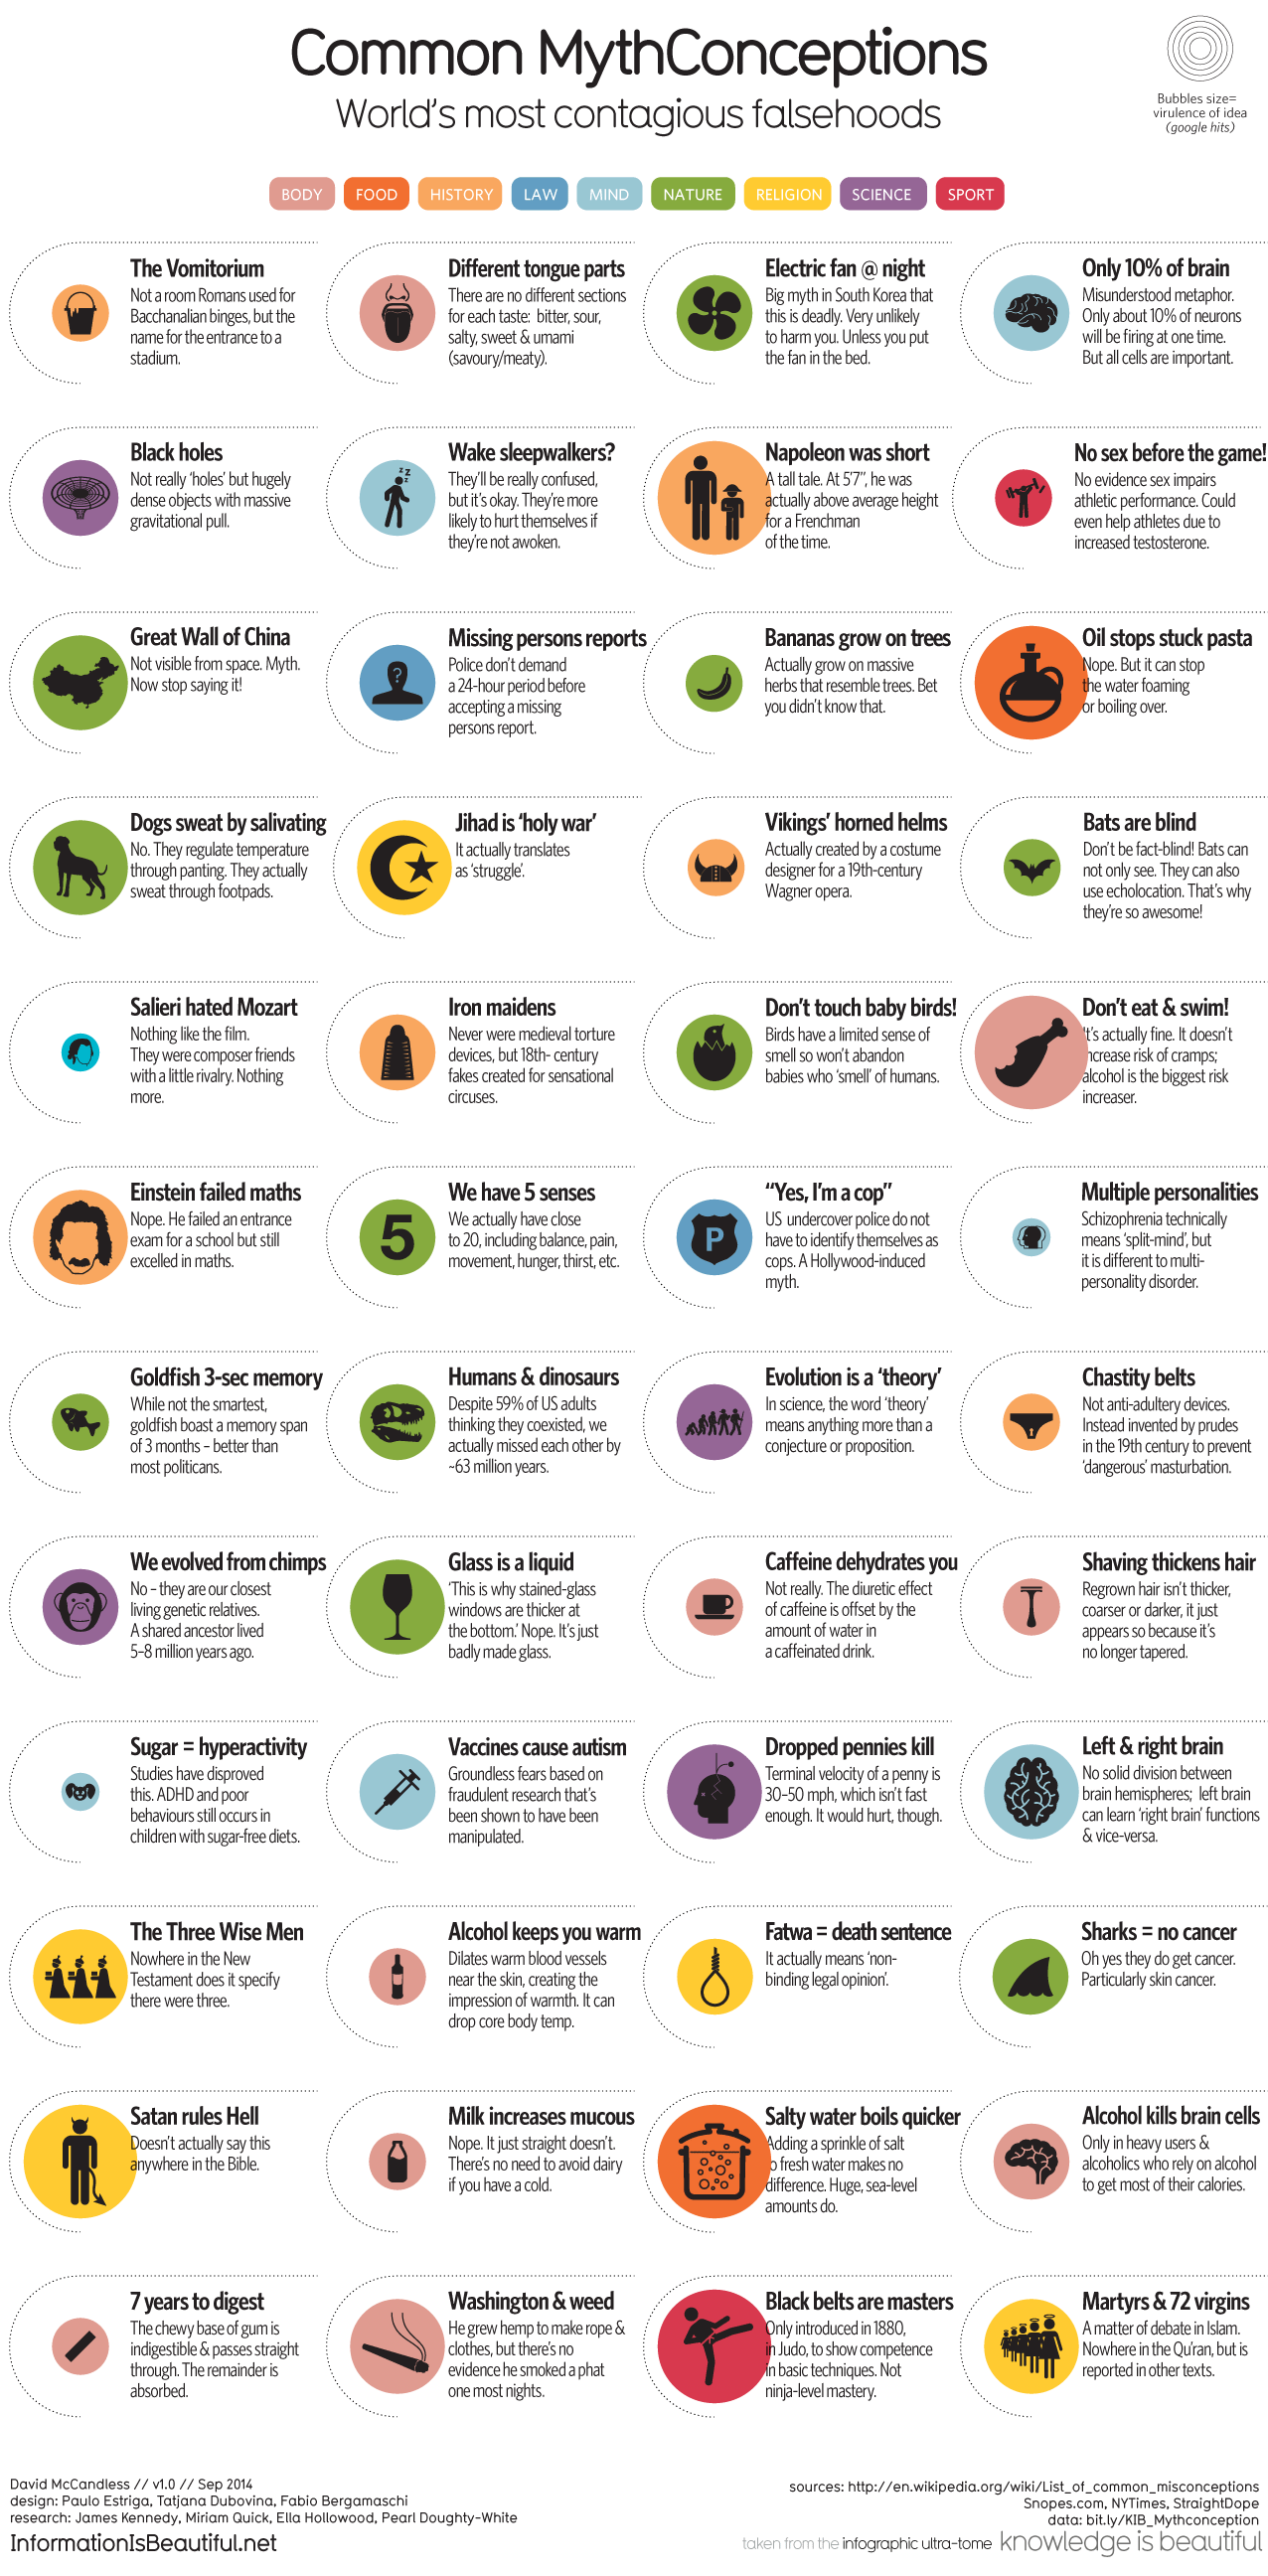 1276_common_mythconceptions.png